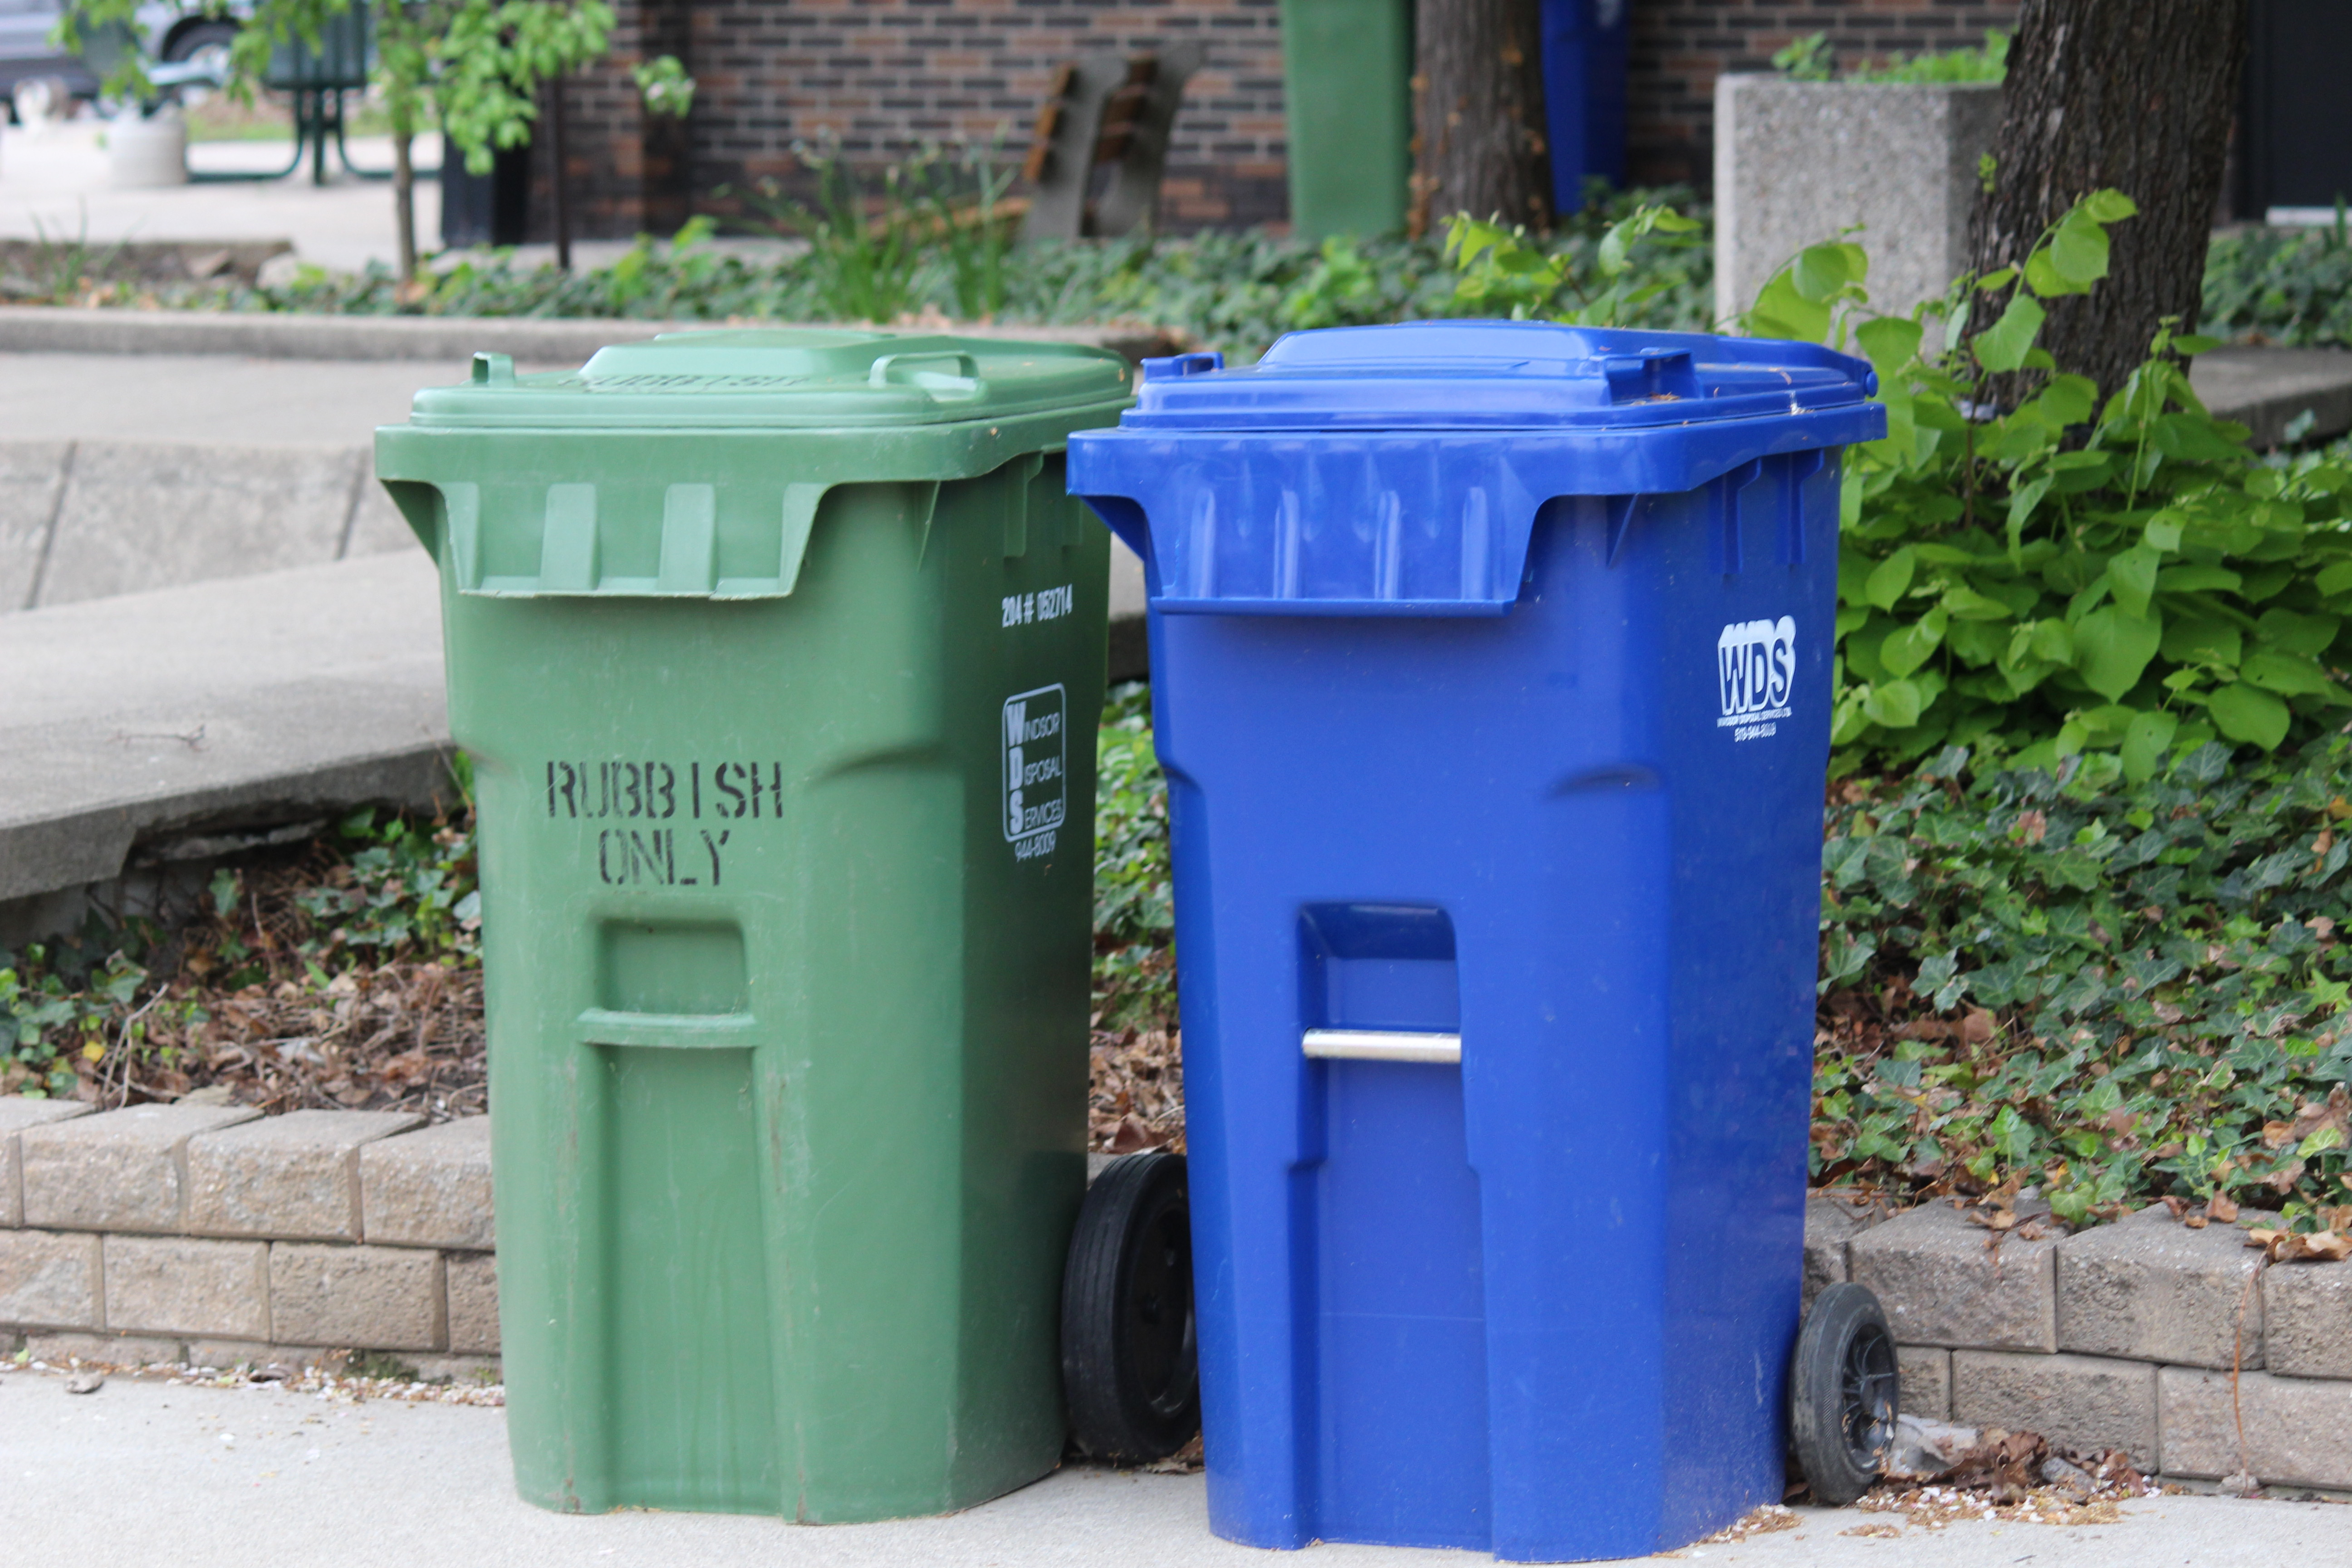 Recycling bins. (Photo by Adelle Loiselle)